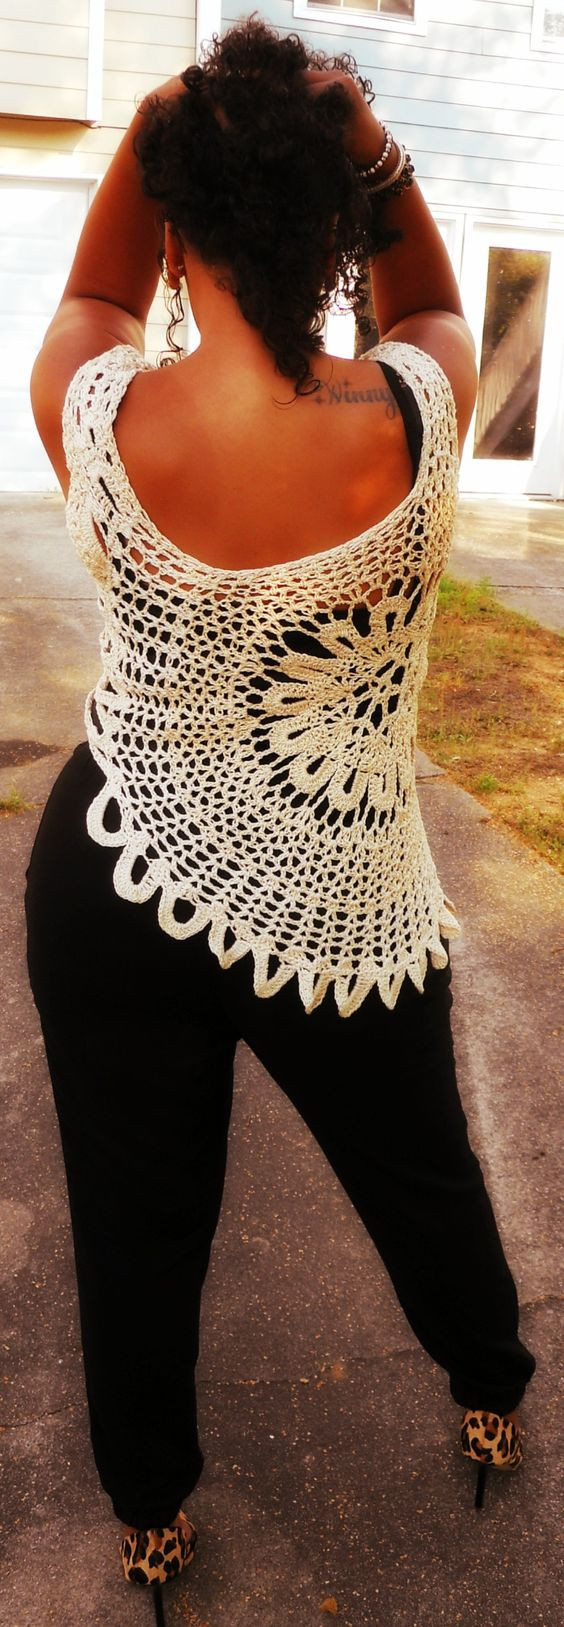 Crochet Lace Tank top New Lace Tank top Med Pattern by Gu Chet Of Incredible 41 Images Crochet Lace Tank top